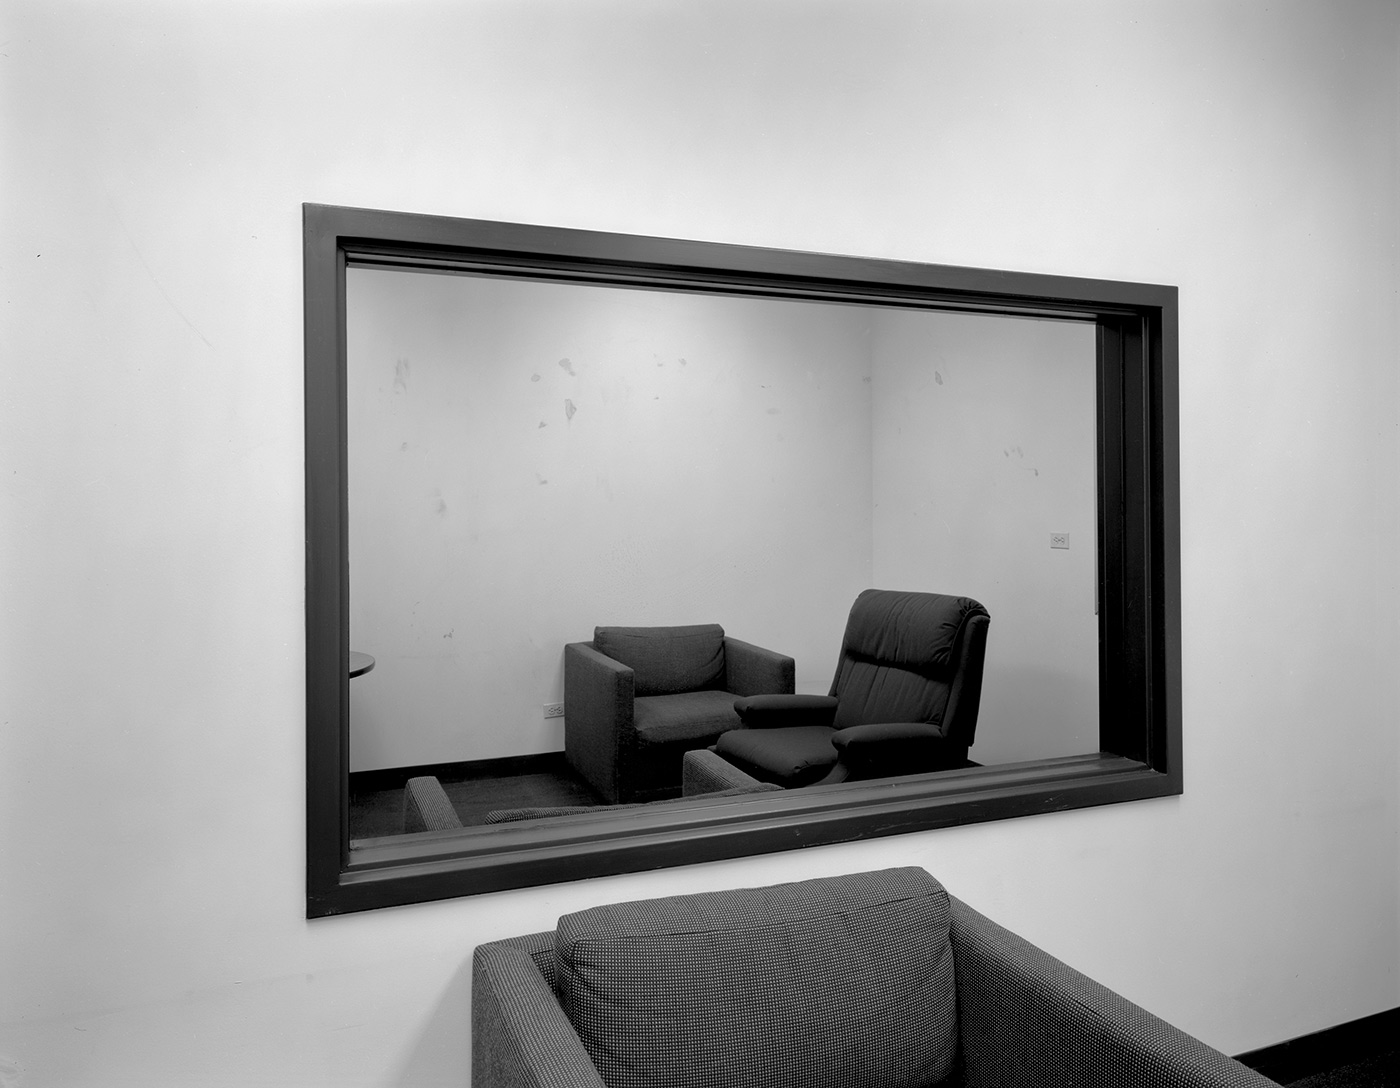 Untitled (observation room with two-way mirror), 1980-1989